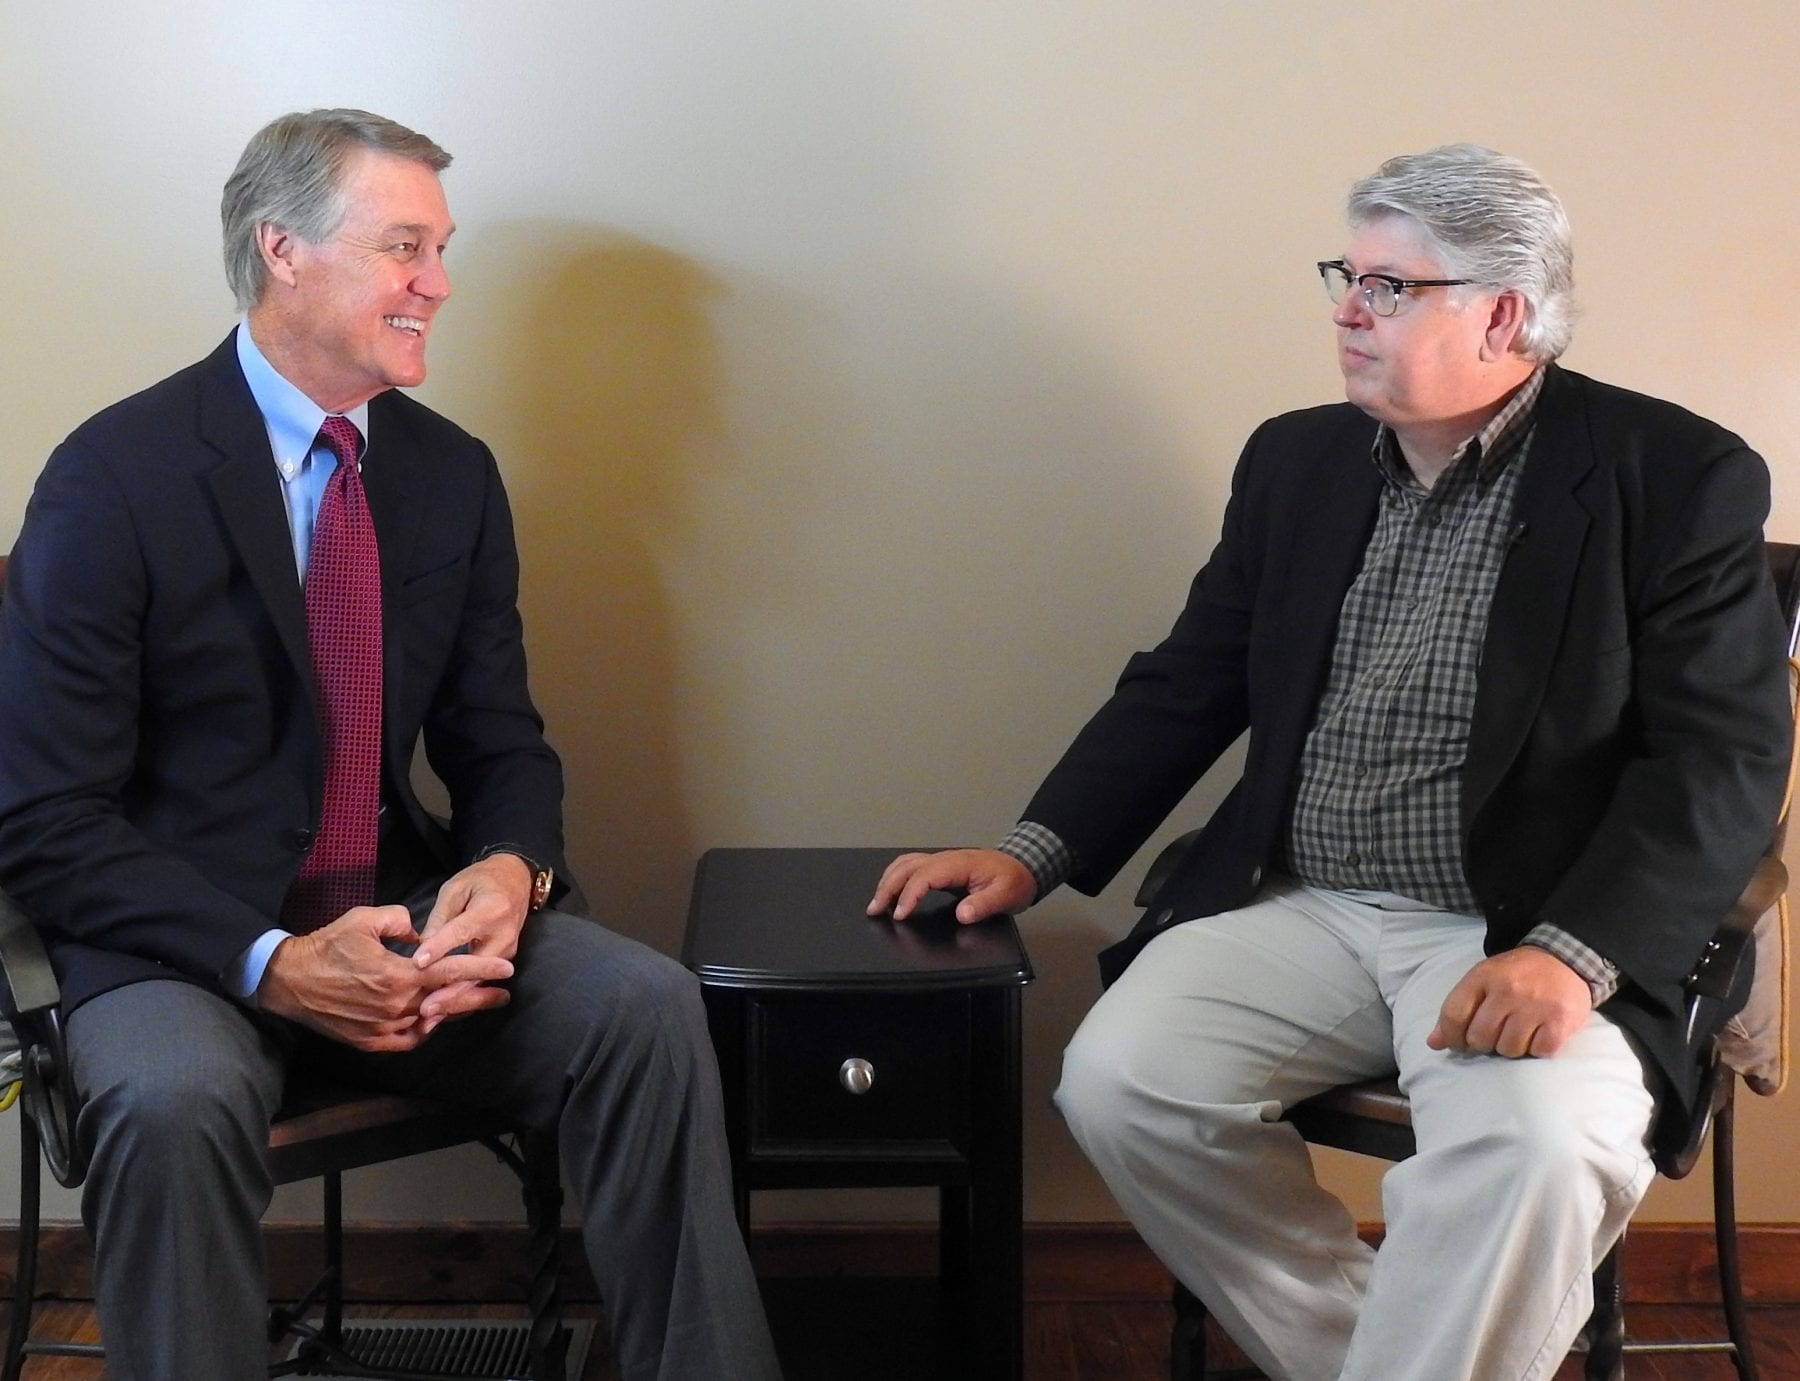 David Perdue, Interview, BKP, FYNTV, Senate, Georgia, government